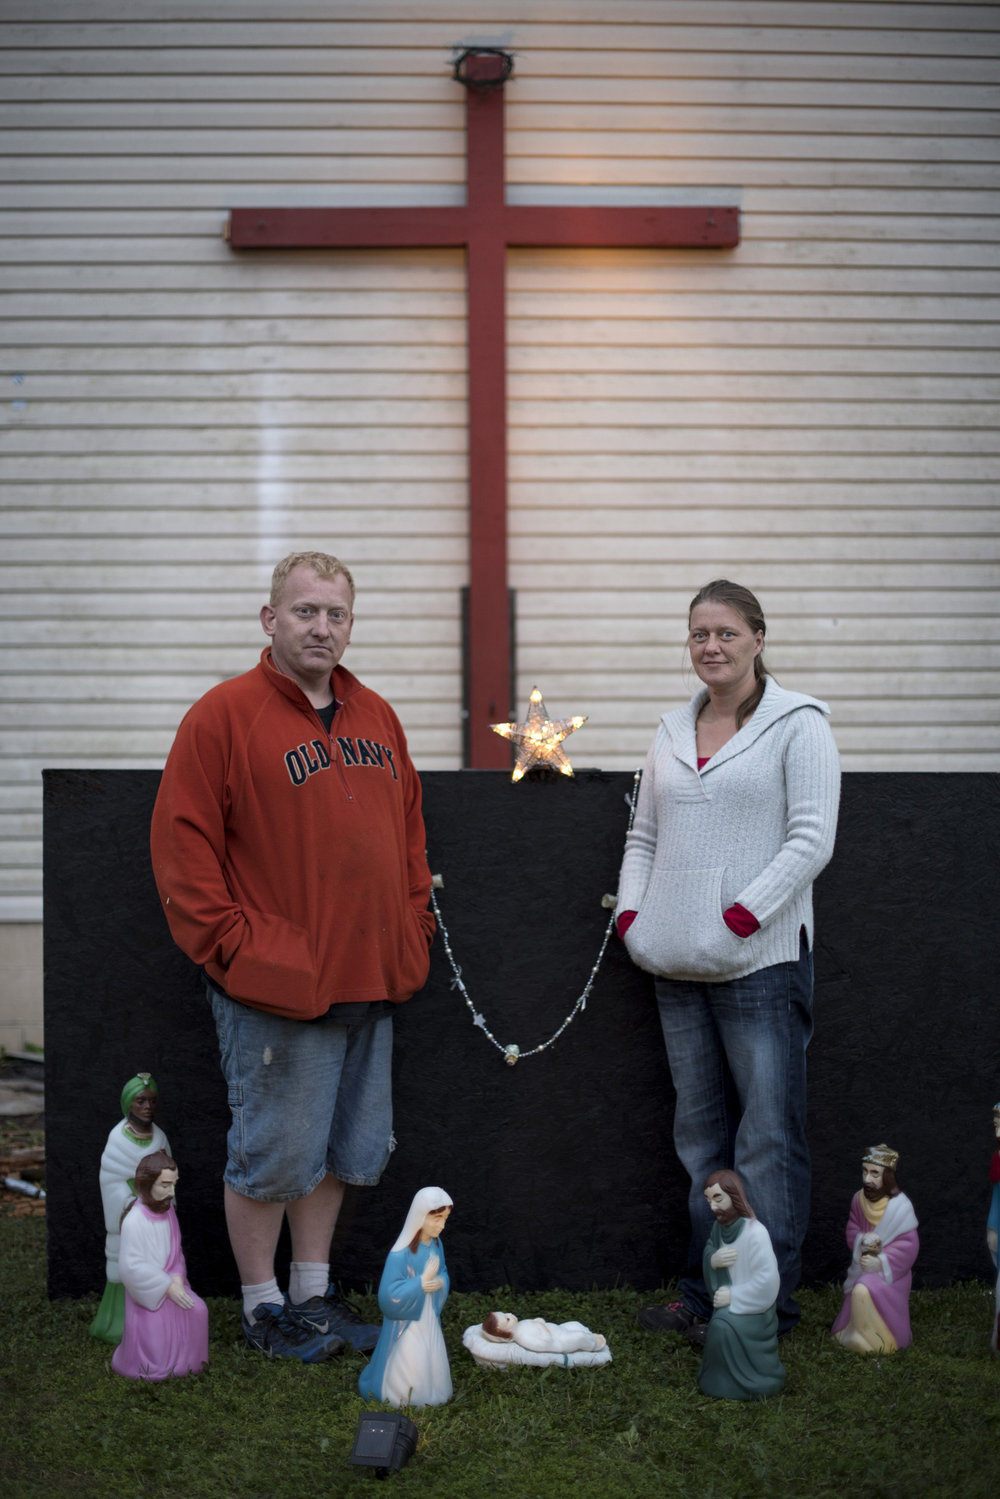 Joseph and Shana Edwards, of Buchtel, Ohio, stand in front of their home by their nativity scene on Nov. 9, 2016. The Edwardses were in the midst of setting up their Christmas lights all over their home.